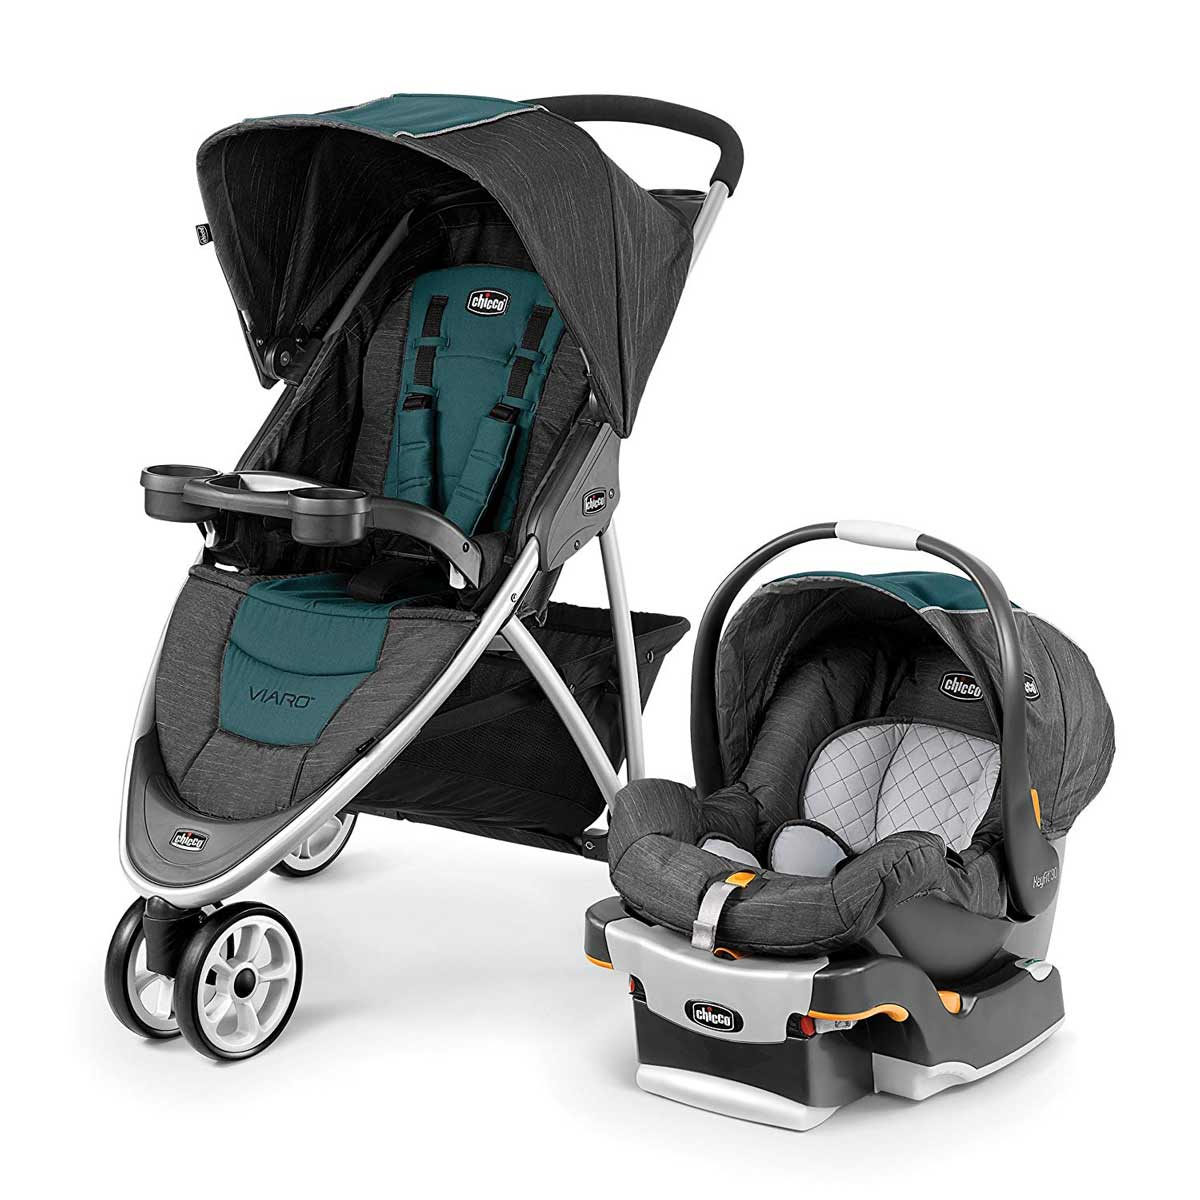 Top Lightweight Travel System Strollers Best Travel System Strollers 2019 Parenting